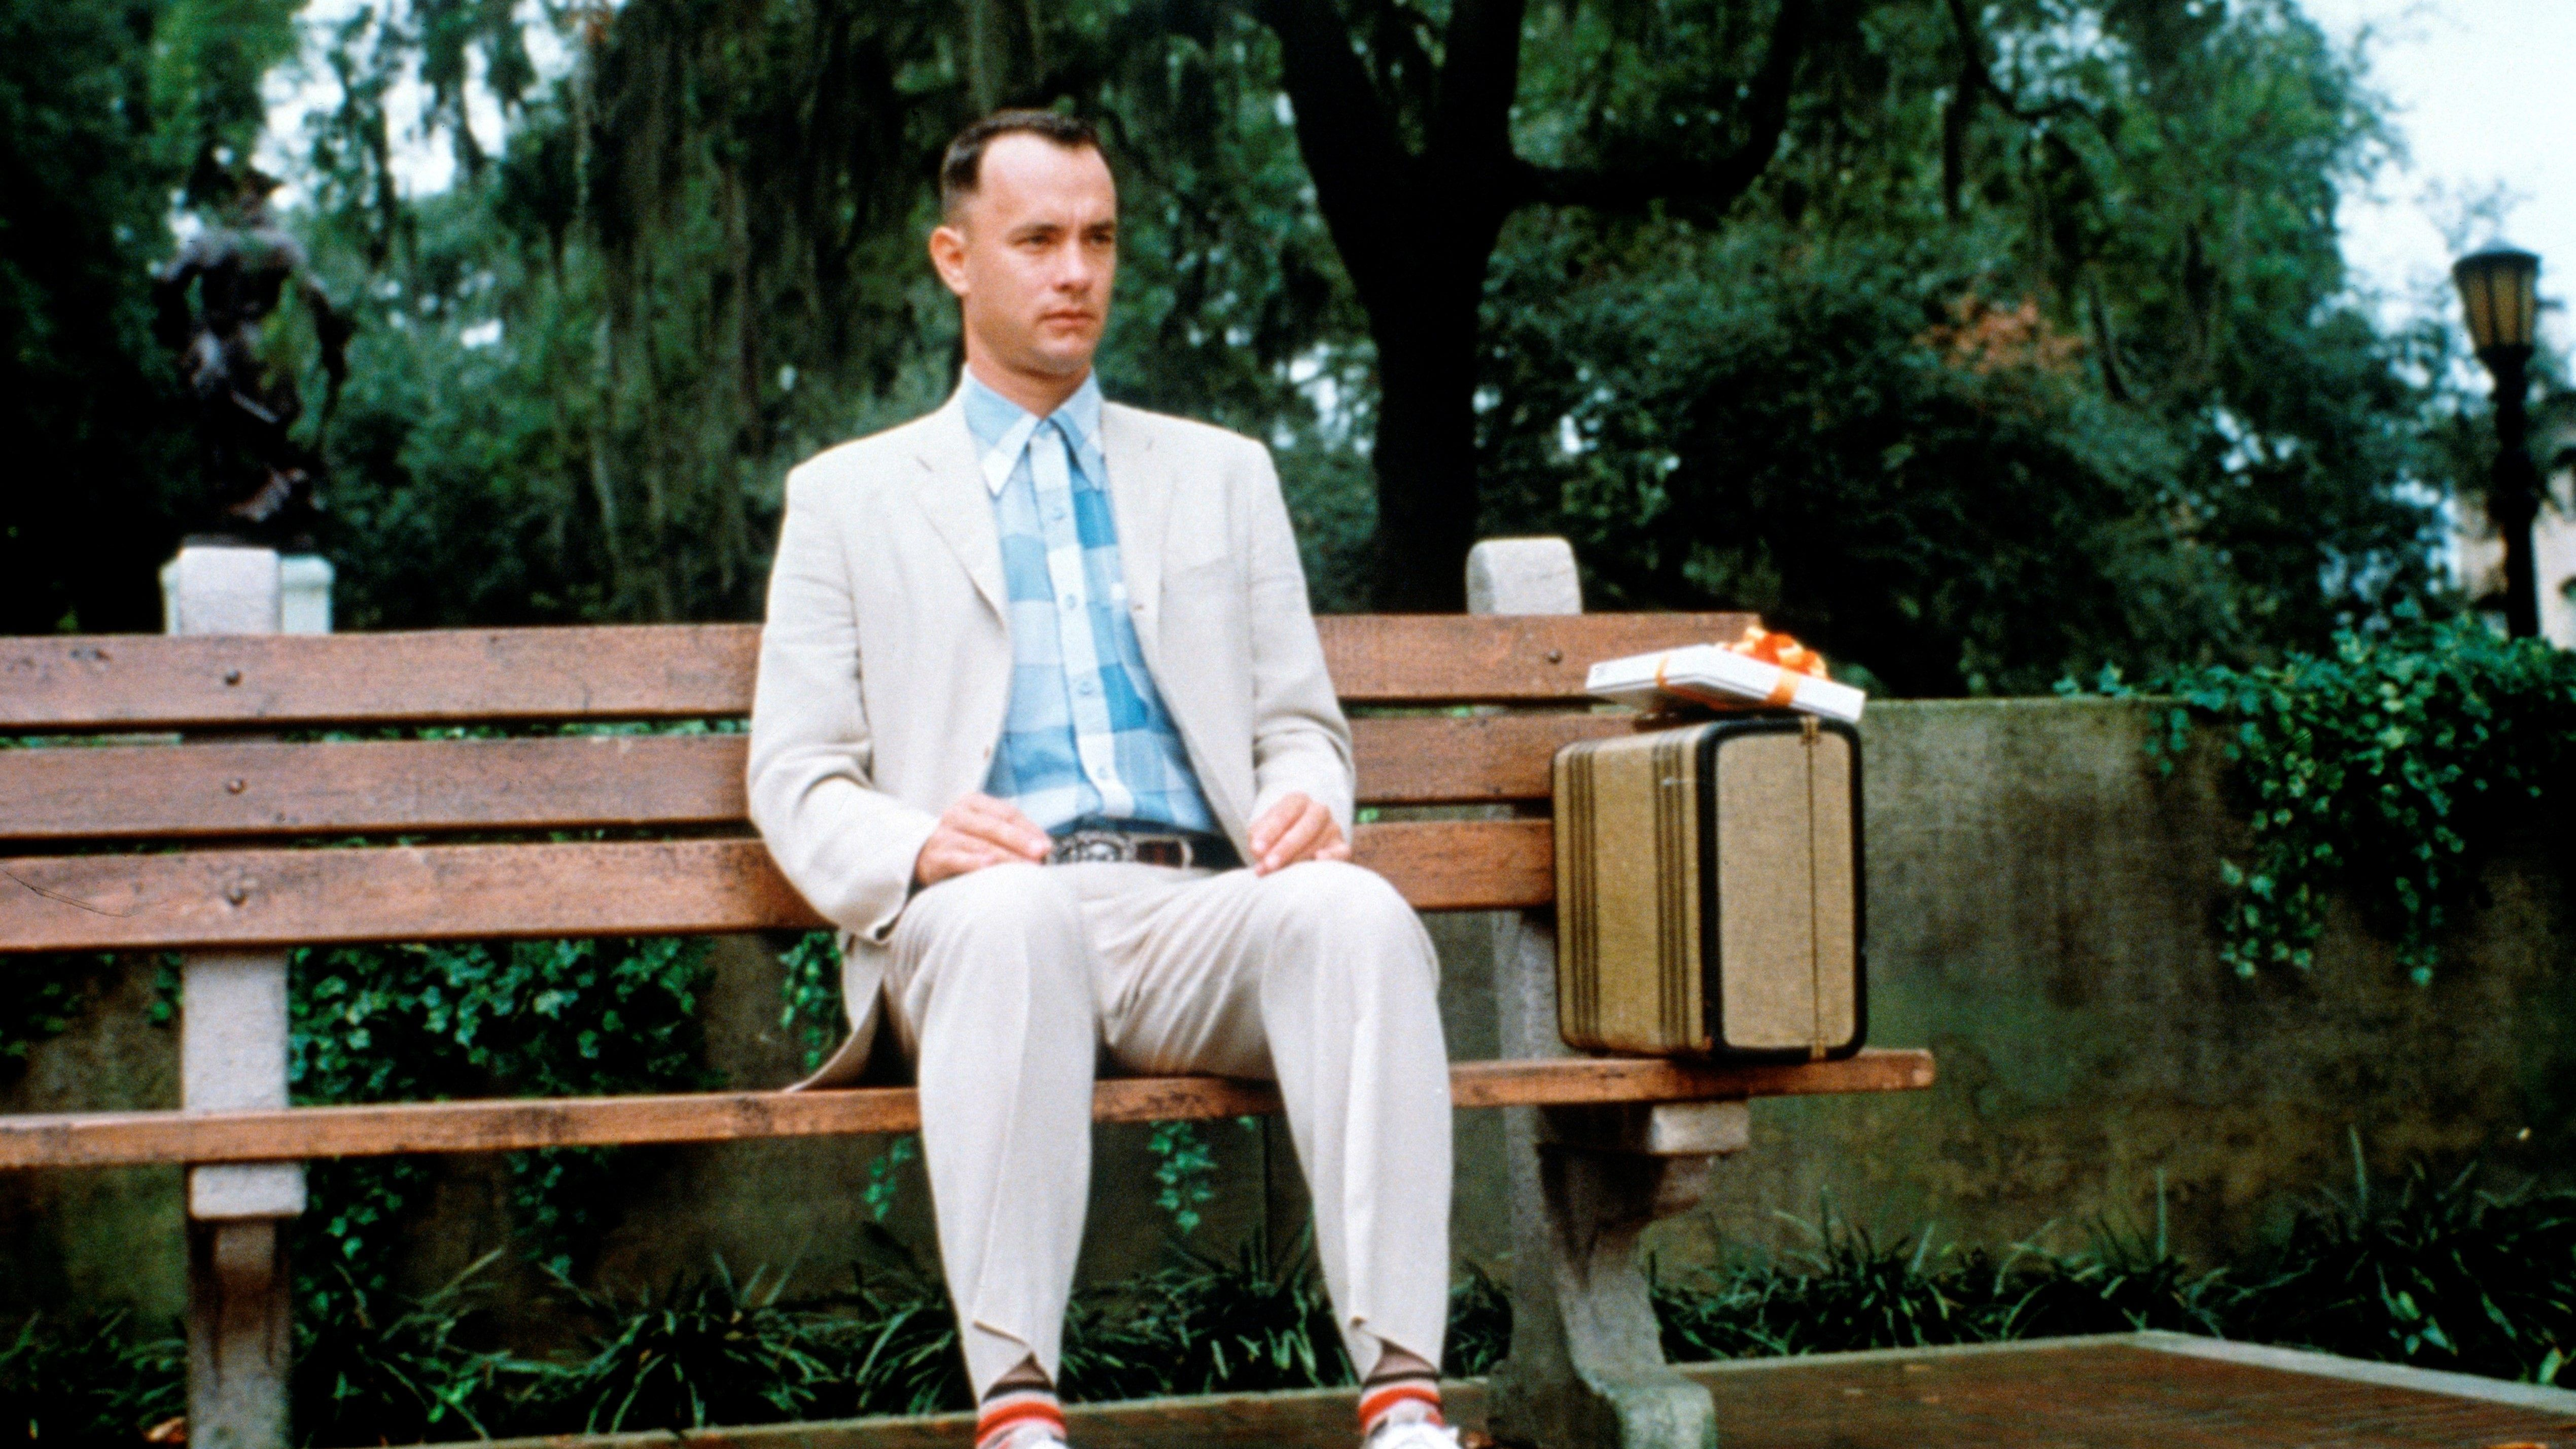 'Forrest Gump' sequel that included Princess Diana, OJ